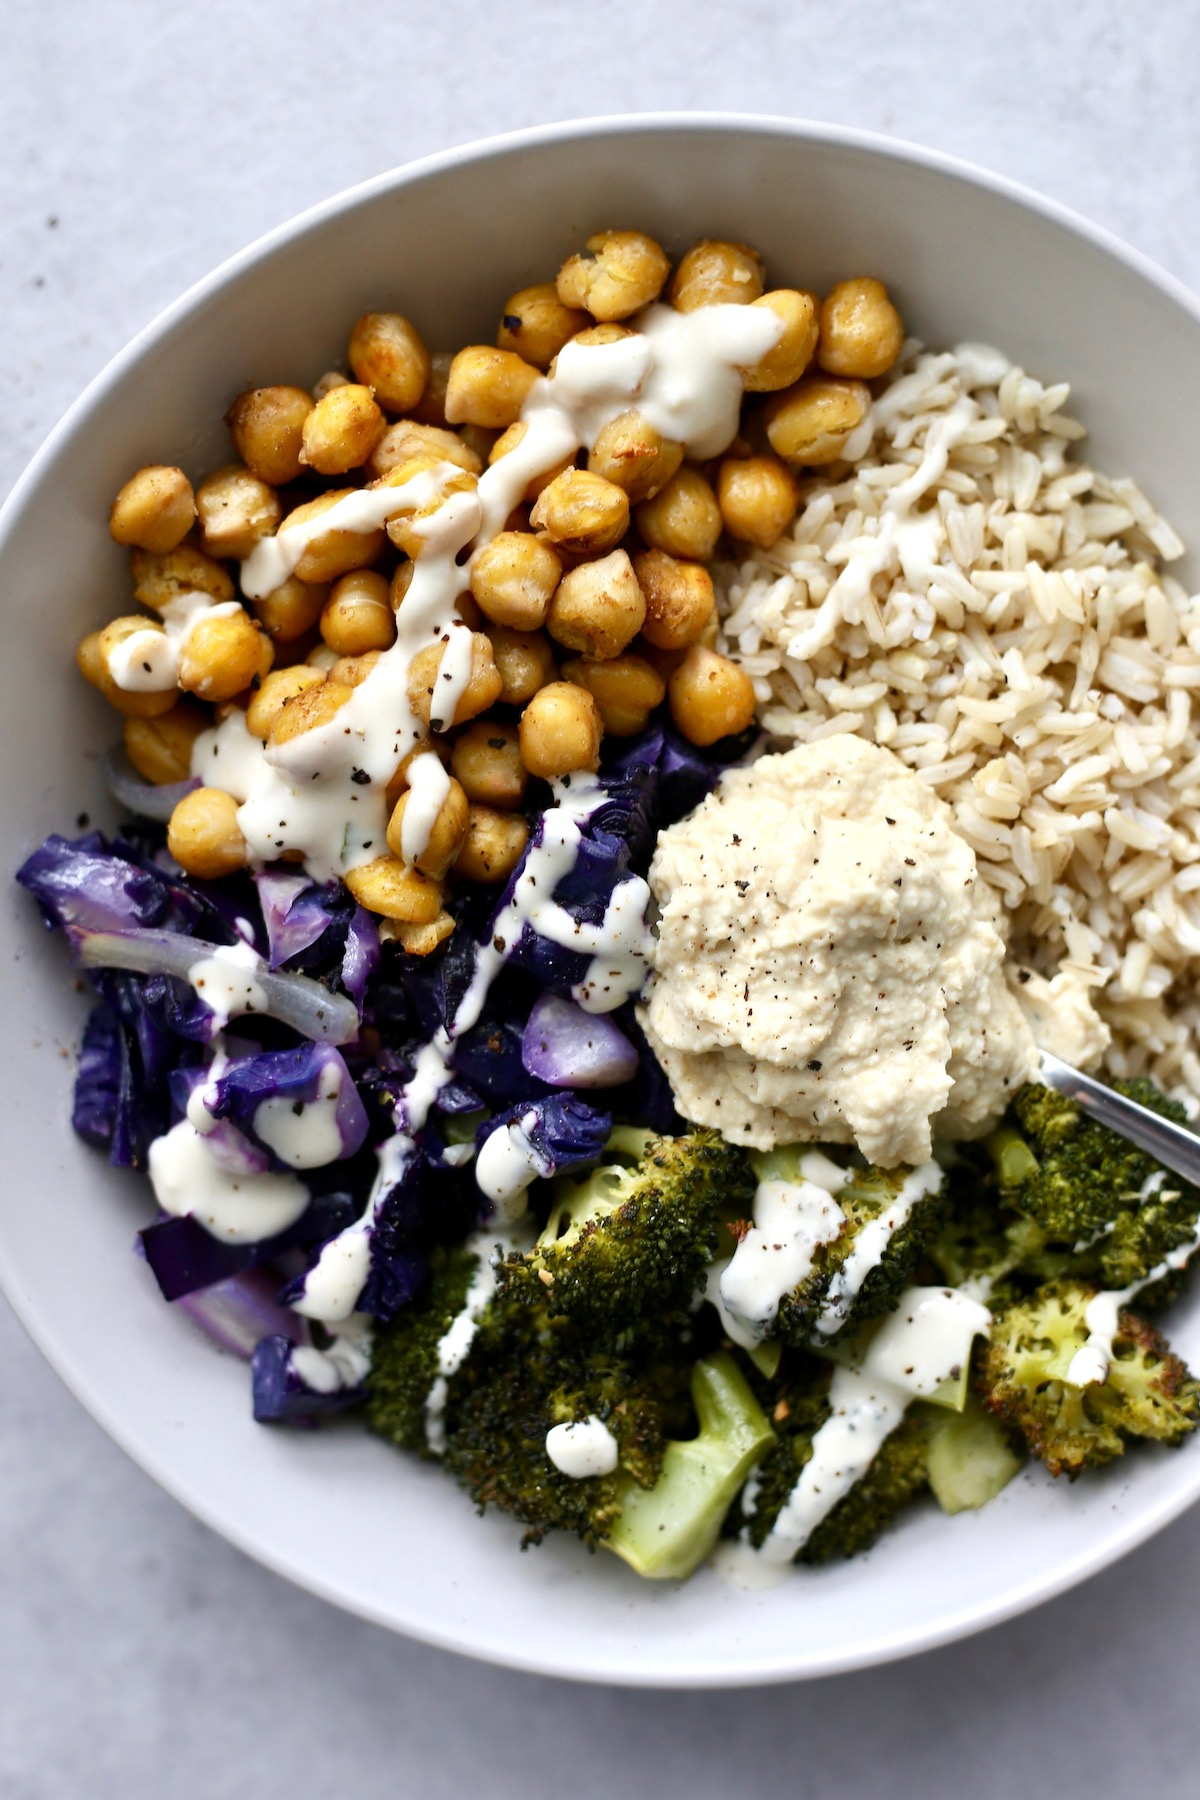 a bowl loaded with brown rice and roasted chickpeas, cabbage and broccoli, drizzled with tahini dressing